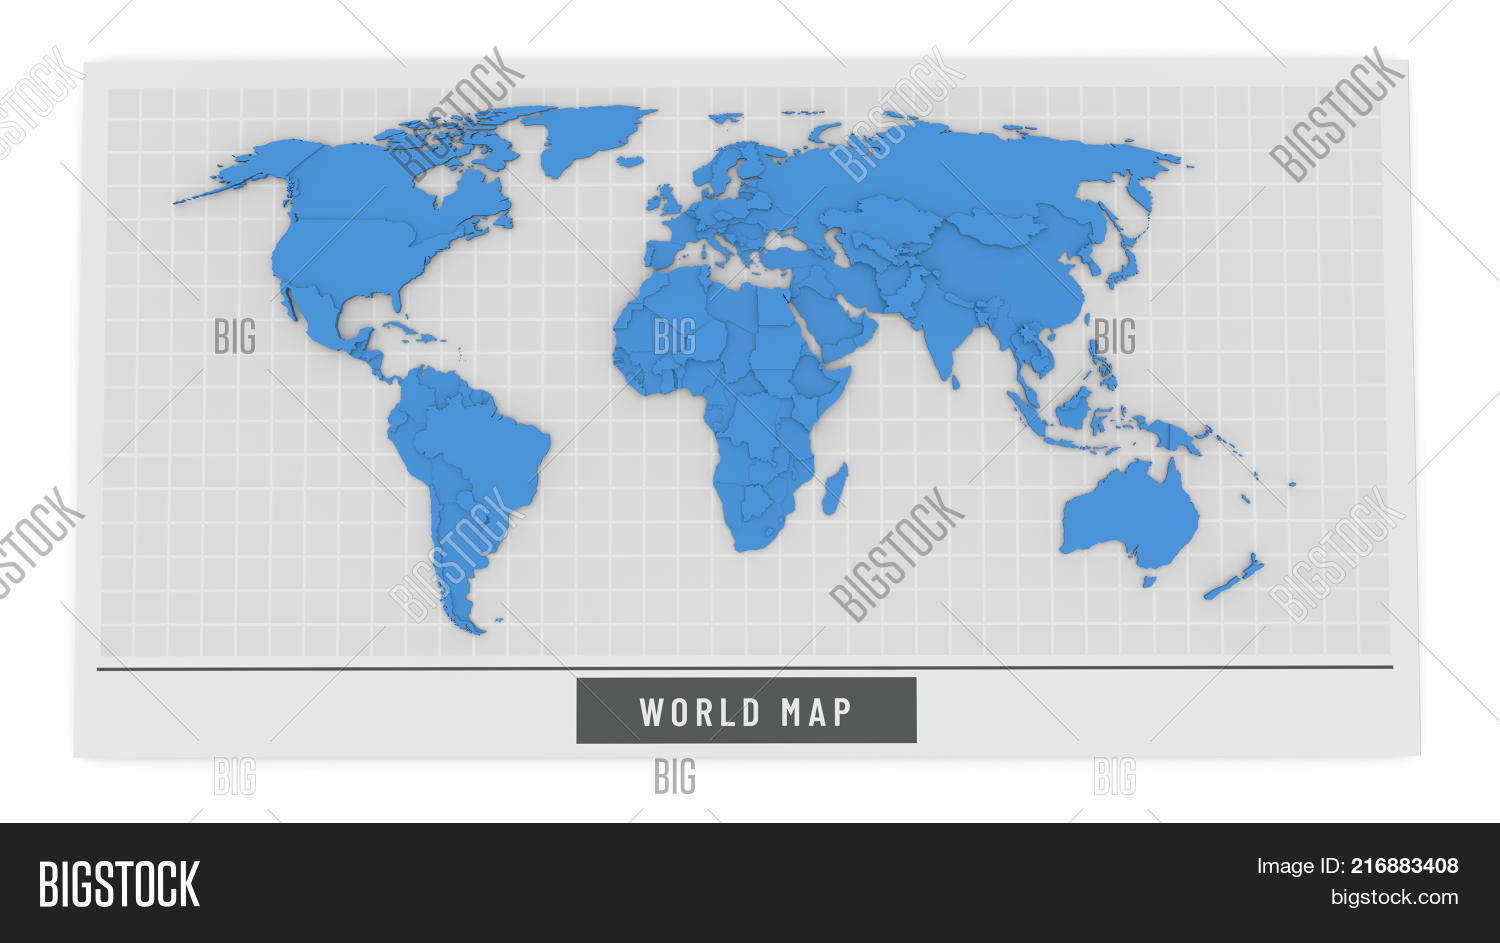 D Bump Map Blue Color Image Photo Free Trial Bigstock - World map in blue color